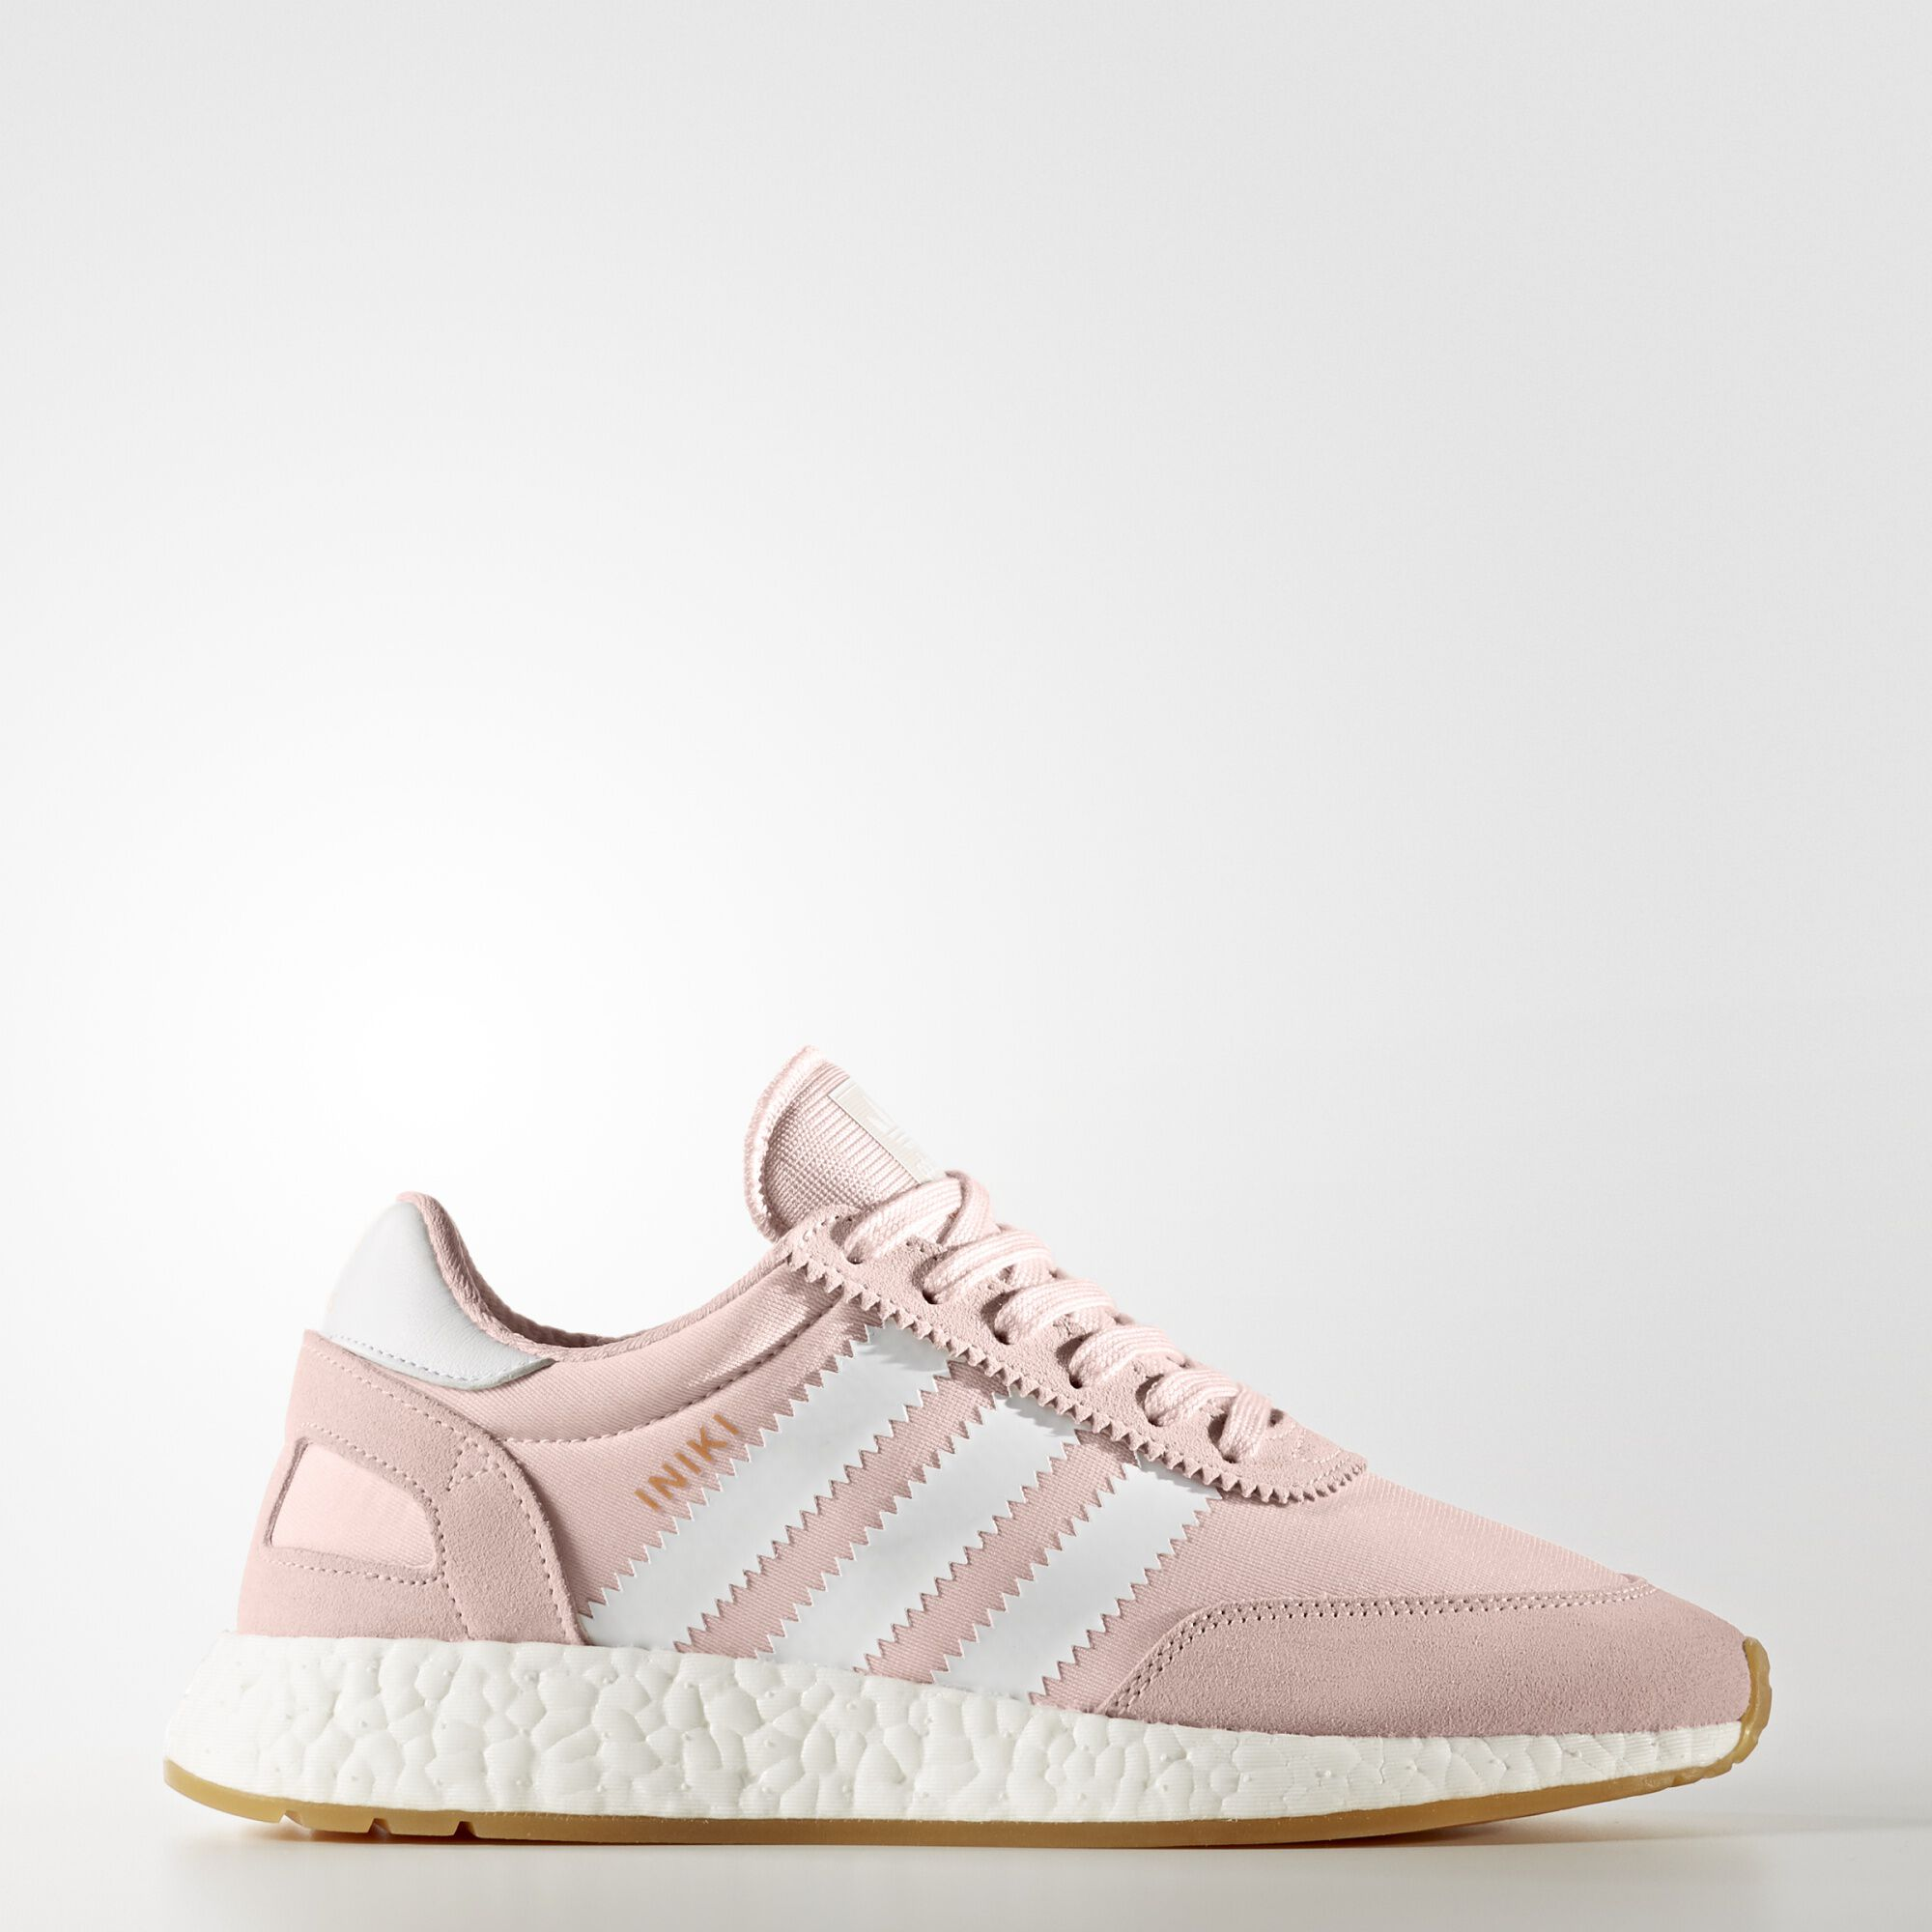 adidas iniki runner shoes pink adidas us. Black Bedroom Furniture Sets. Home Design Ideas